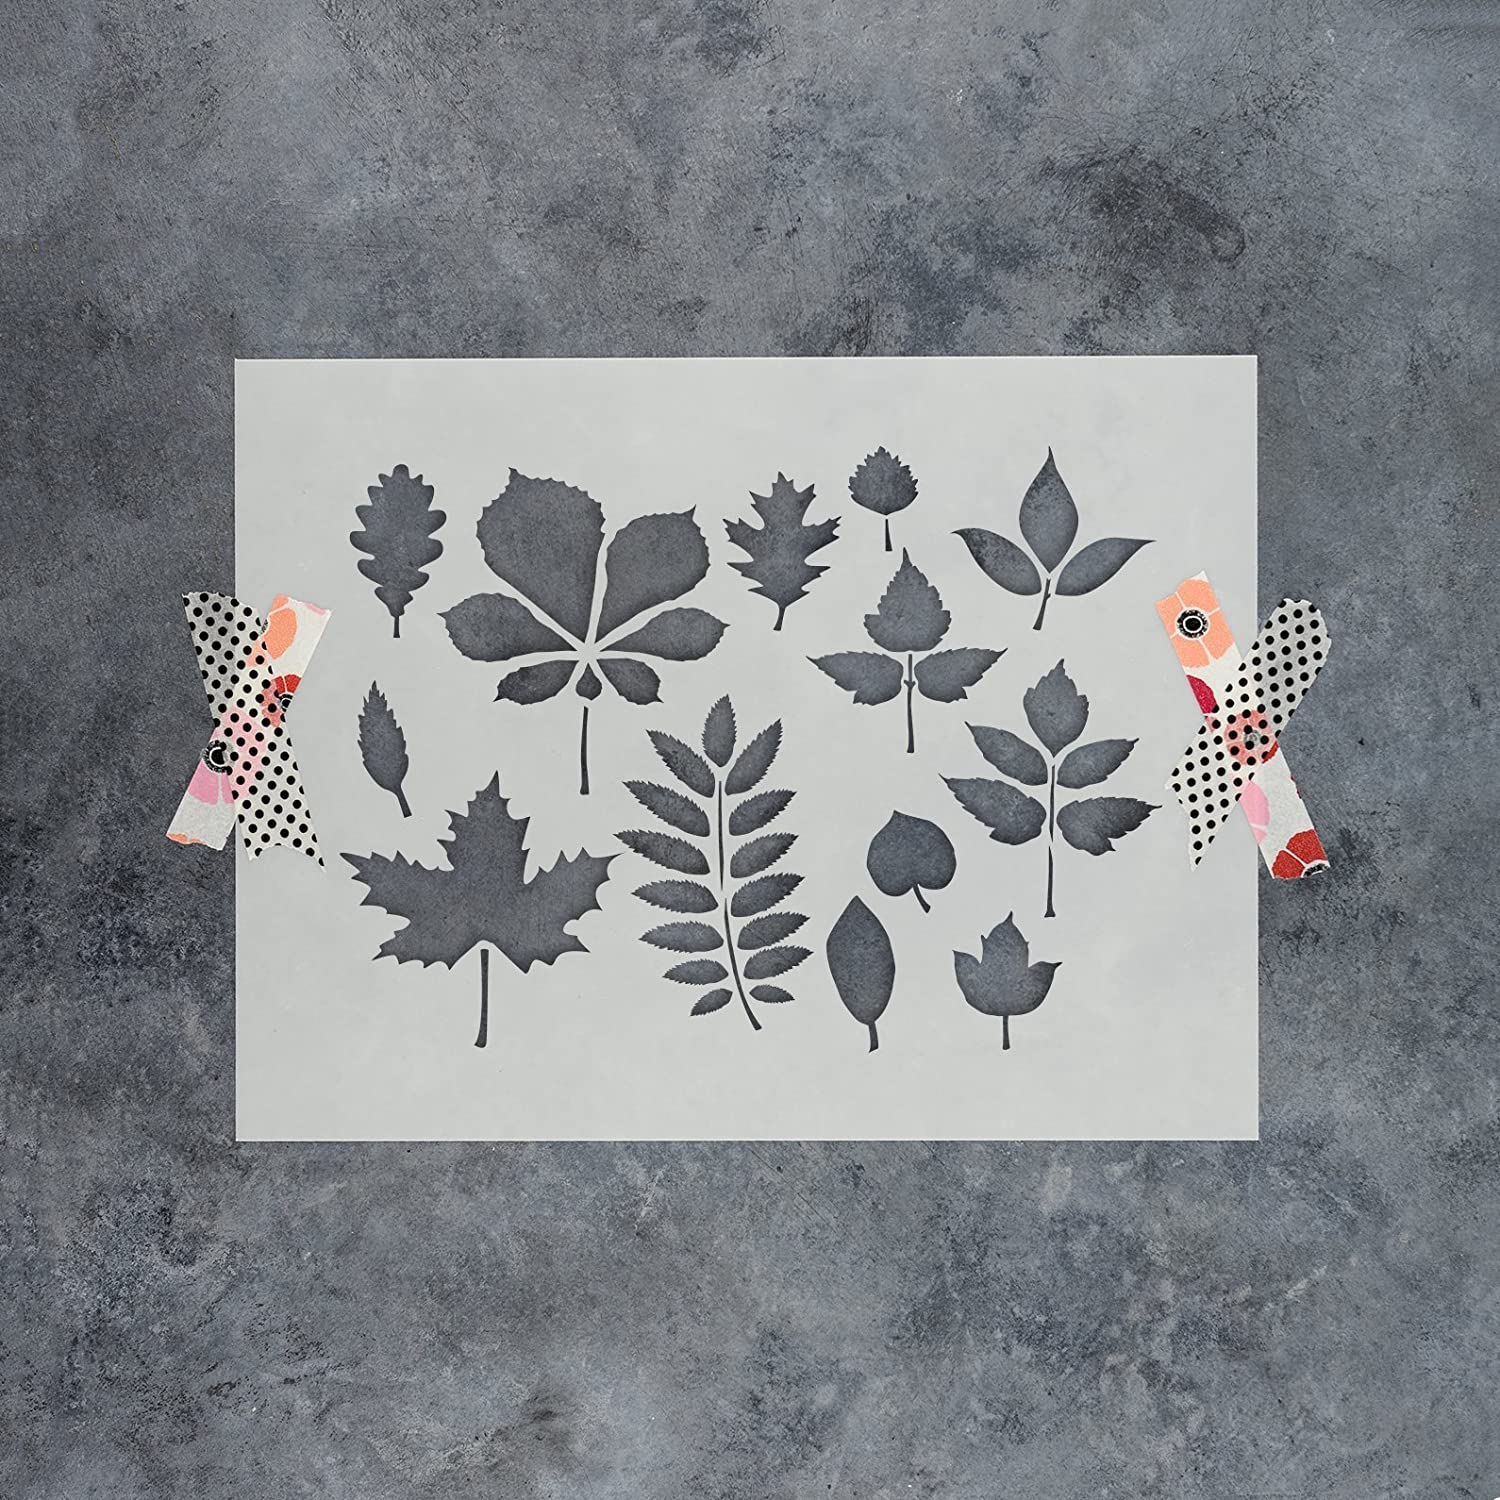 Fall Leaves Stencil Template for Walls and Crafts Reusable Stencils for Painting in Small /& Large Sizes